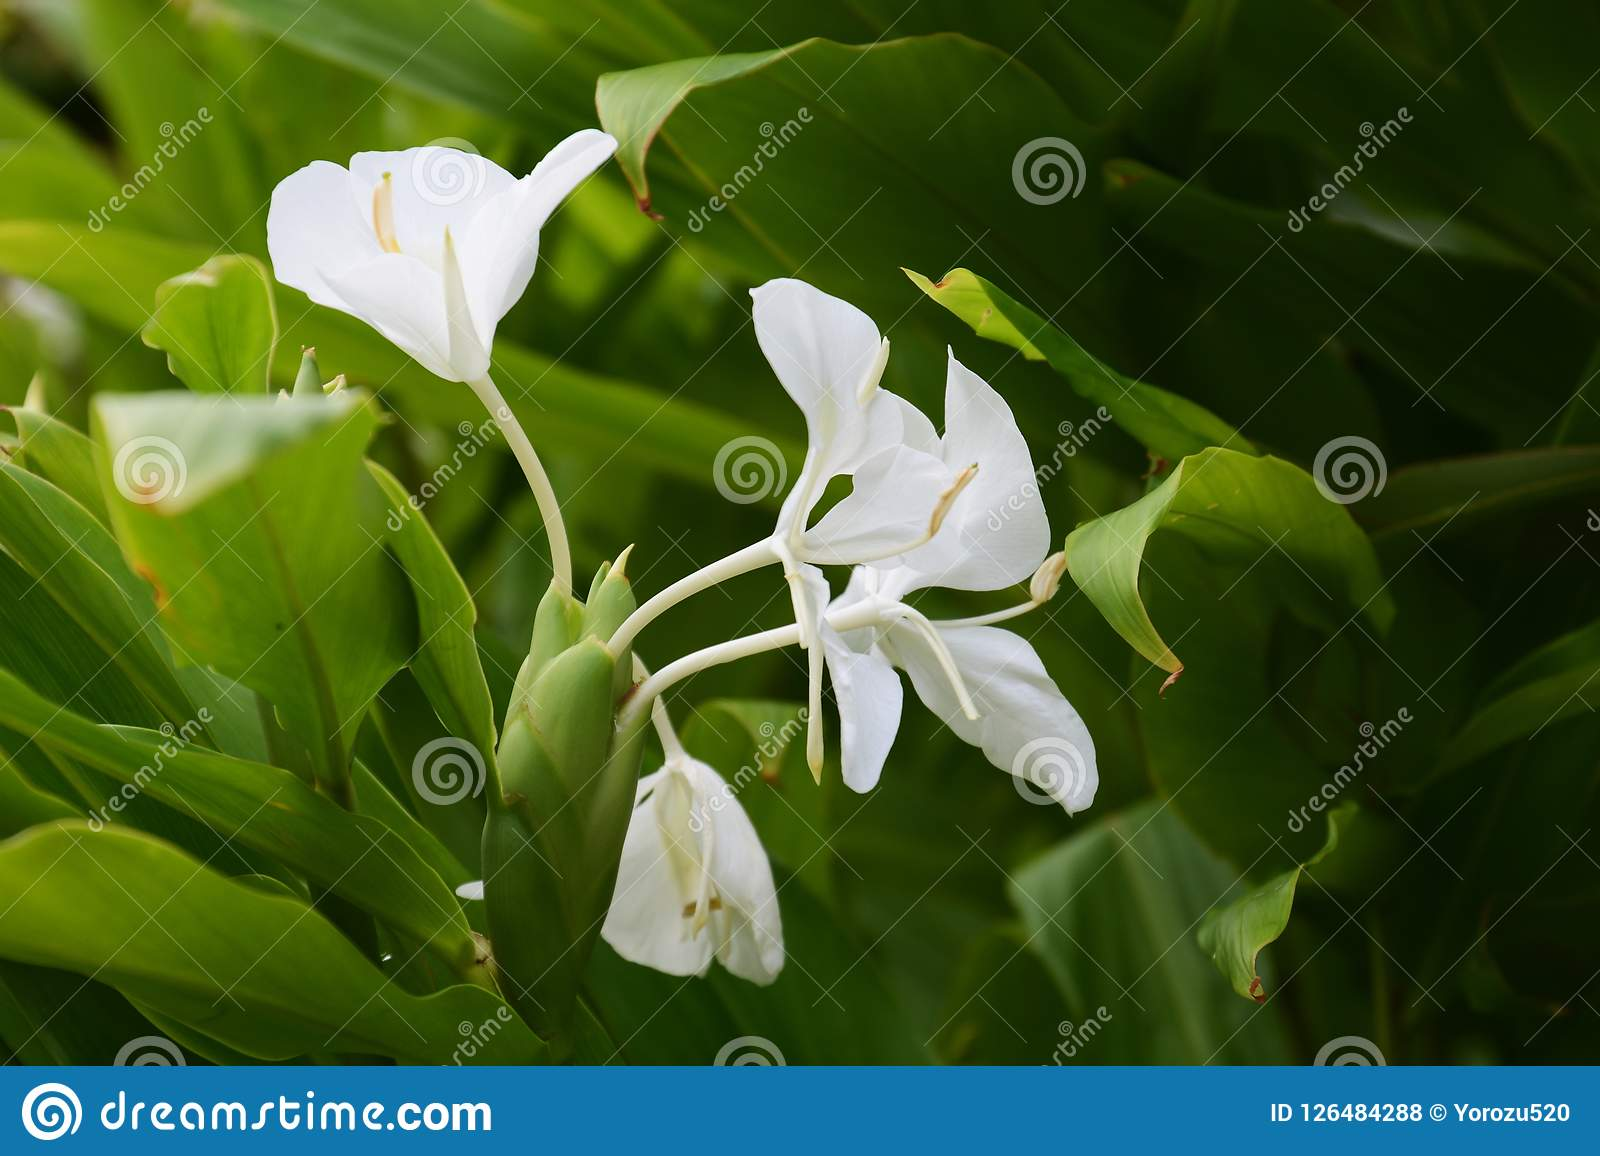 Ginger Lily Stock Photo Image Of Bloom Garland Family 126484288